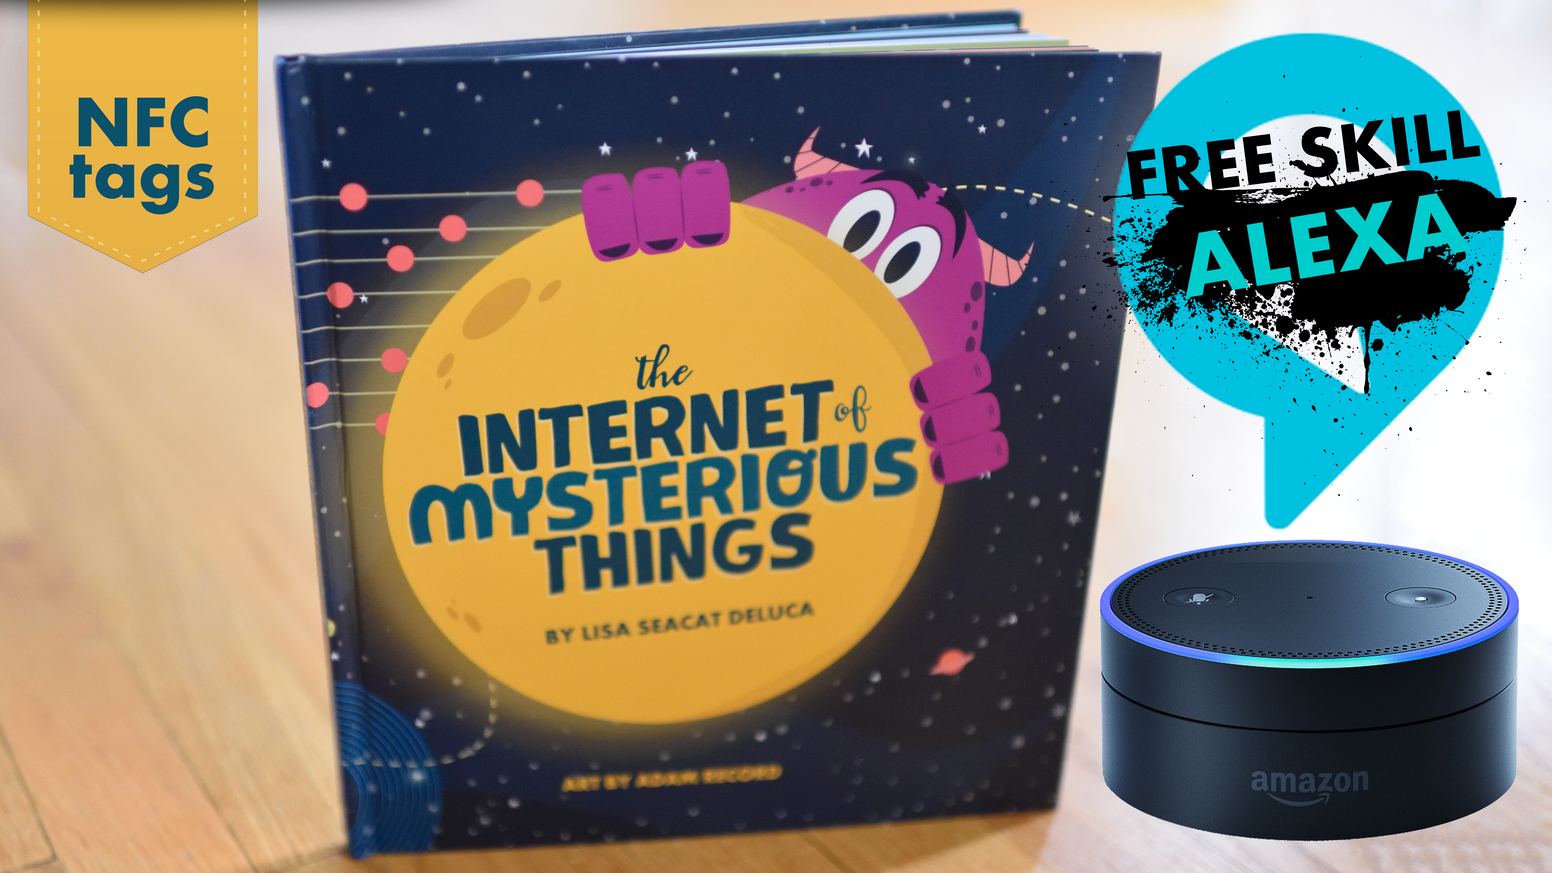 A children's book with a touch of technology. Living, NFC-enabled book about the Internet of Things (IoT).